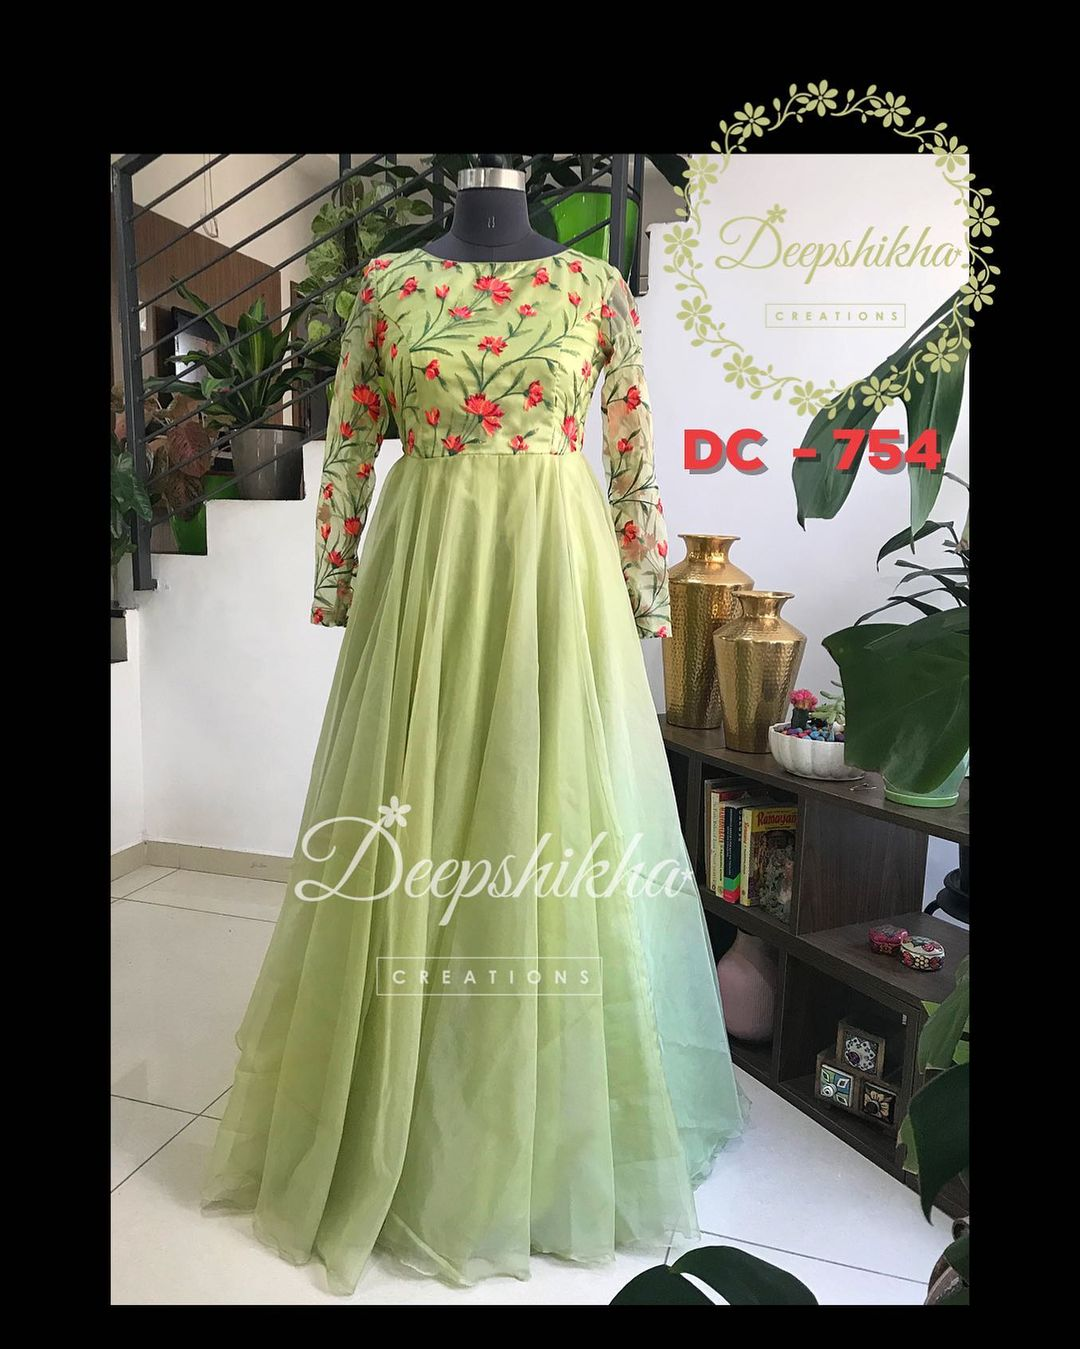 DC - 754. Stunning olive green color floor length dress floral design on yoke.